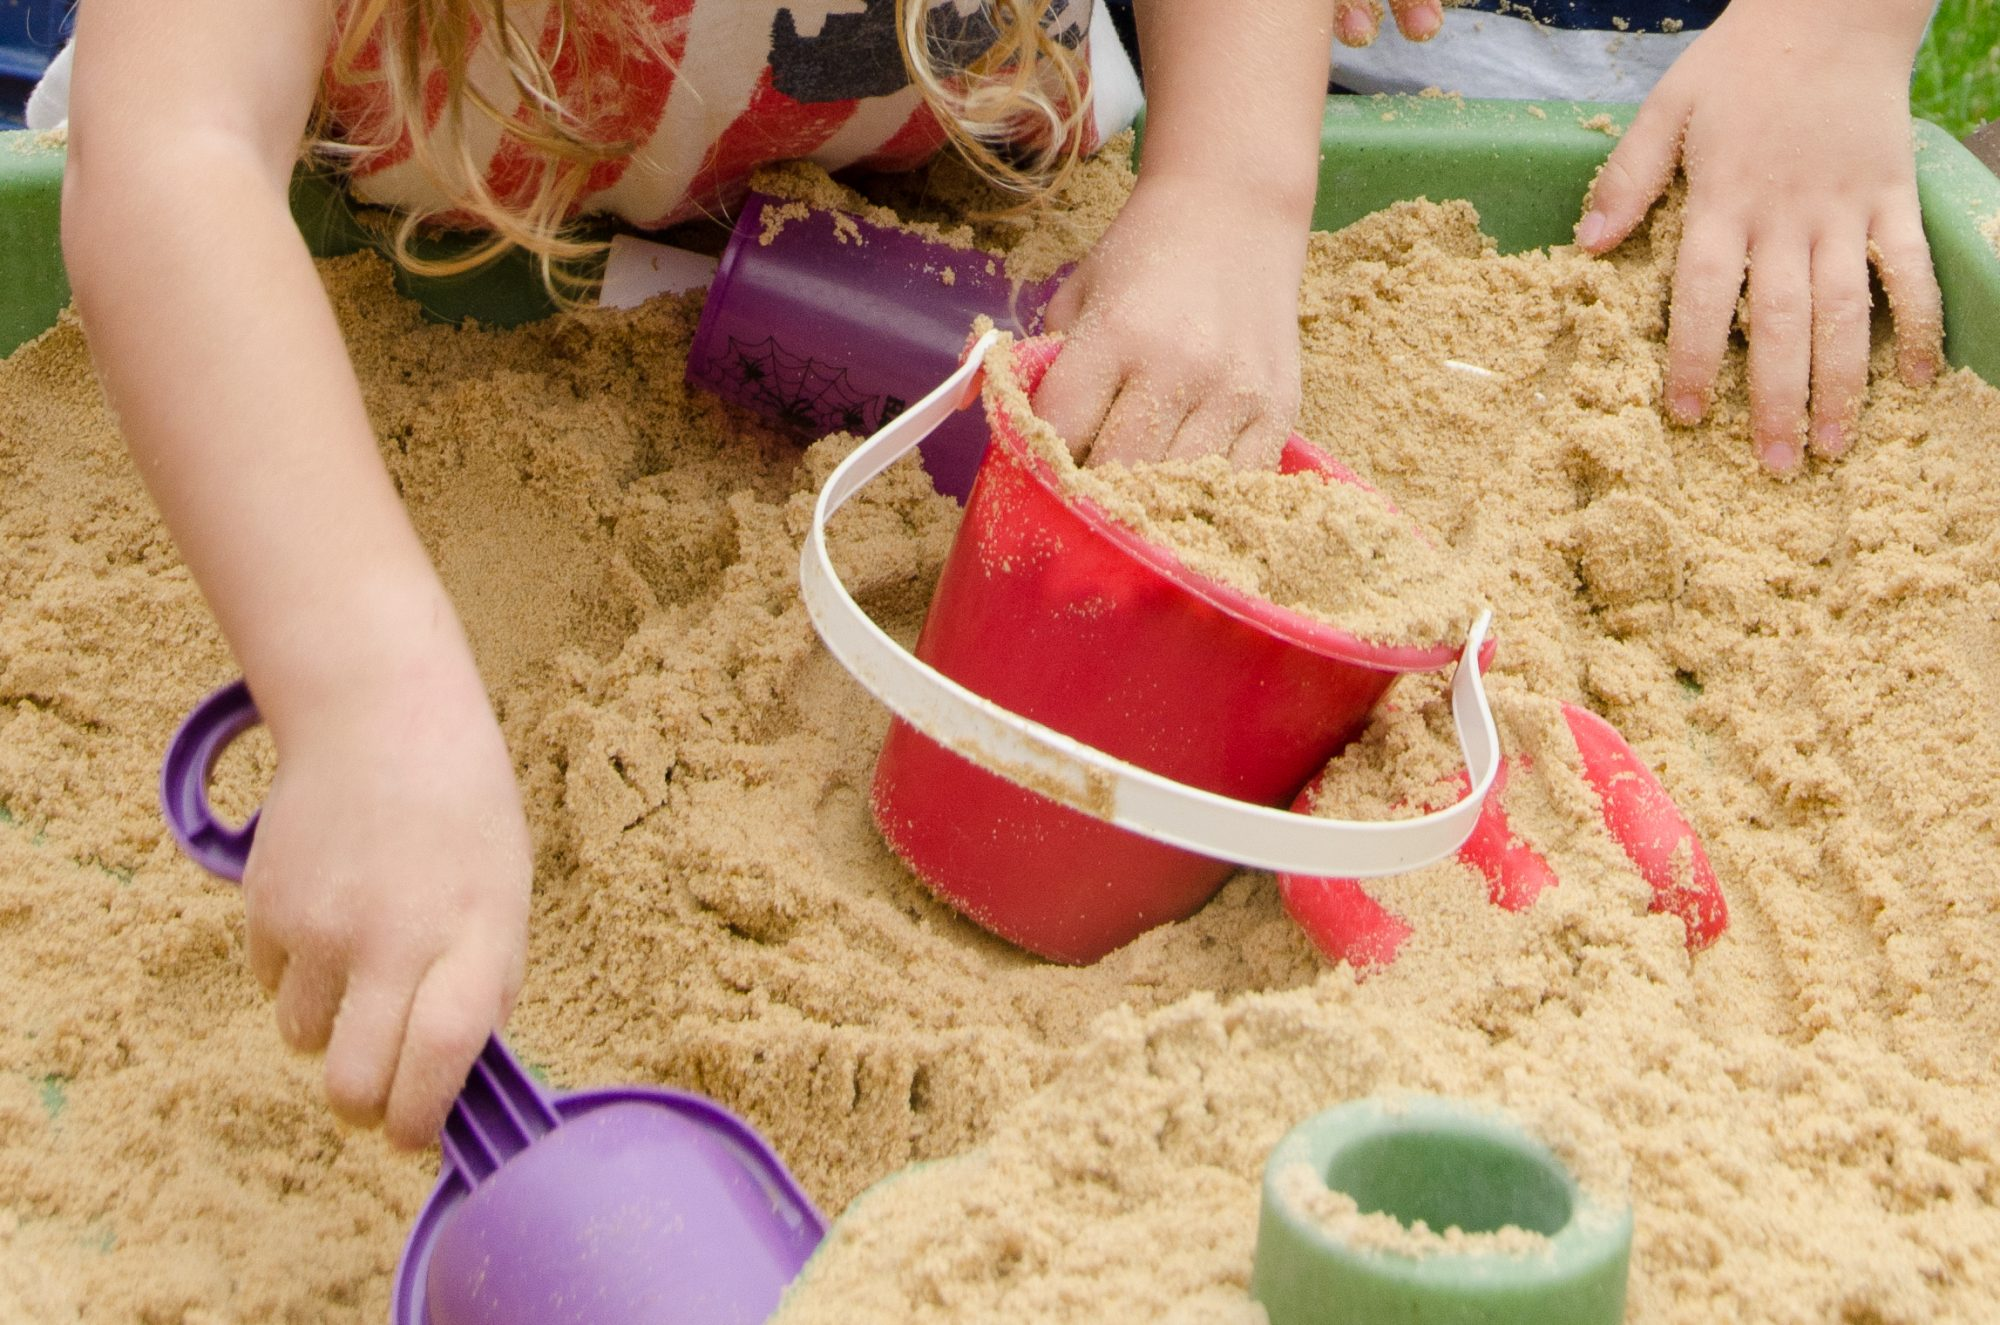 Myth: Sandboxes are a breeding ground for lice